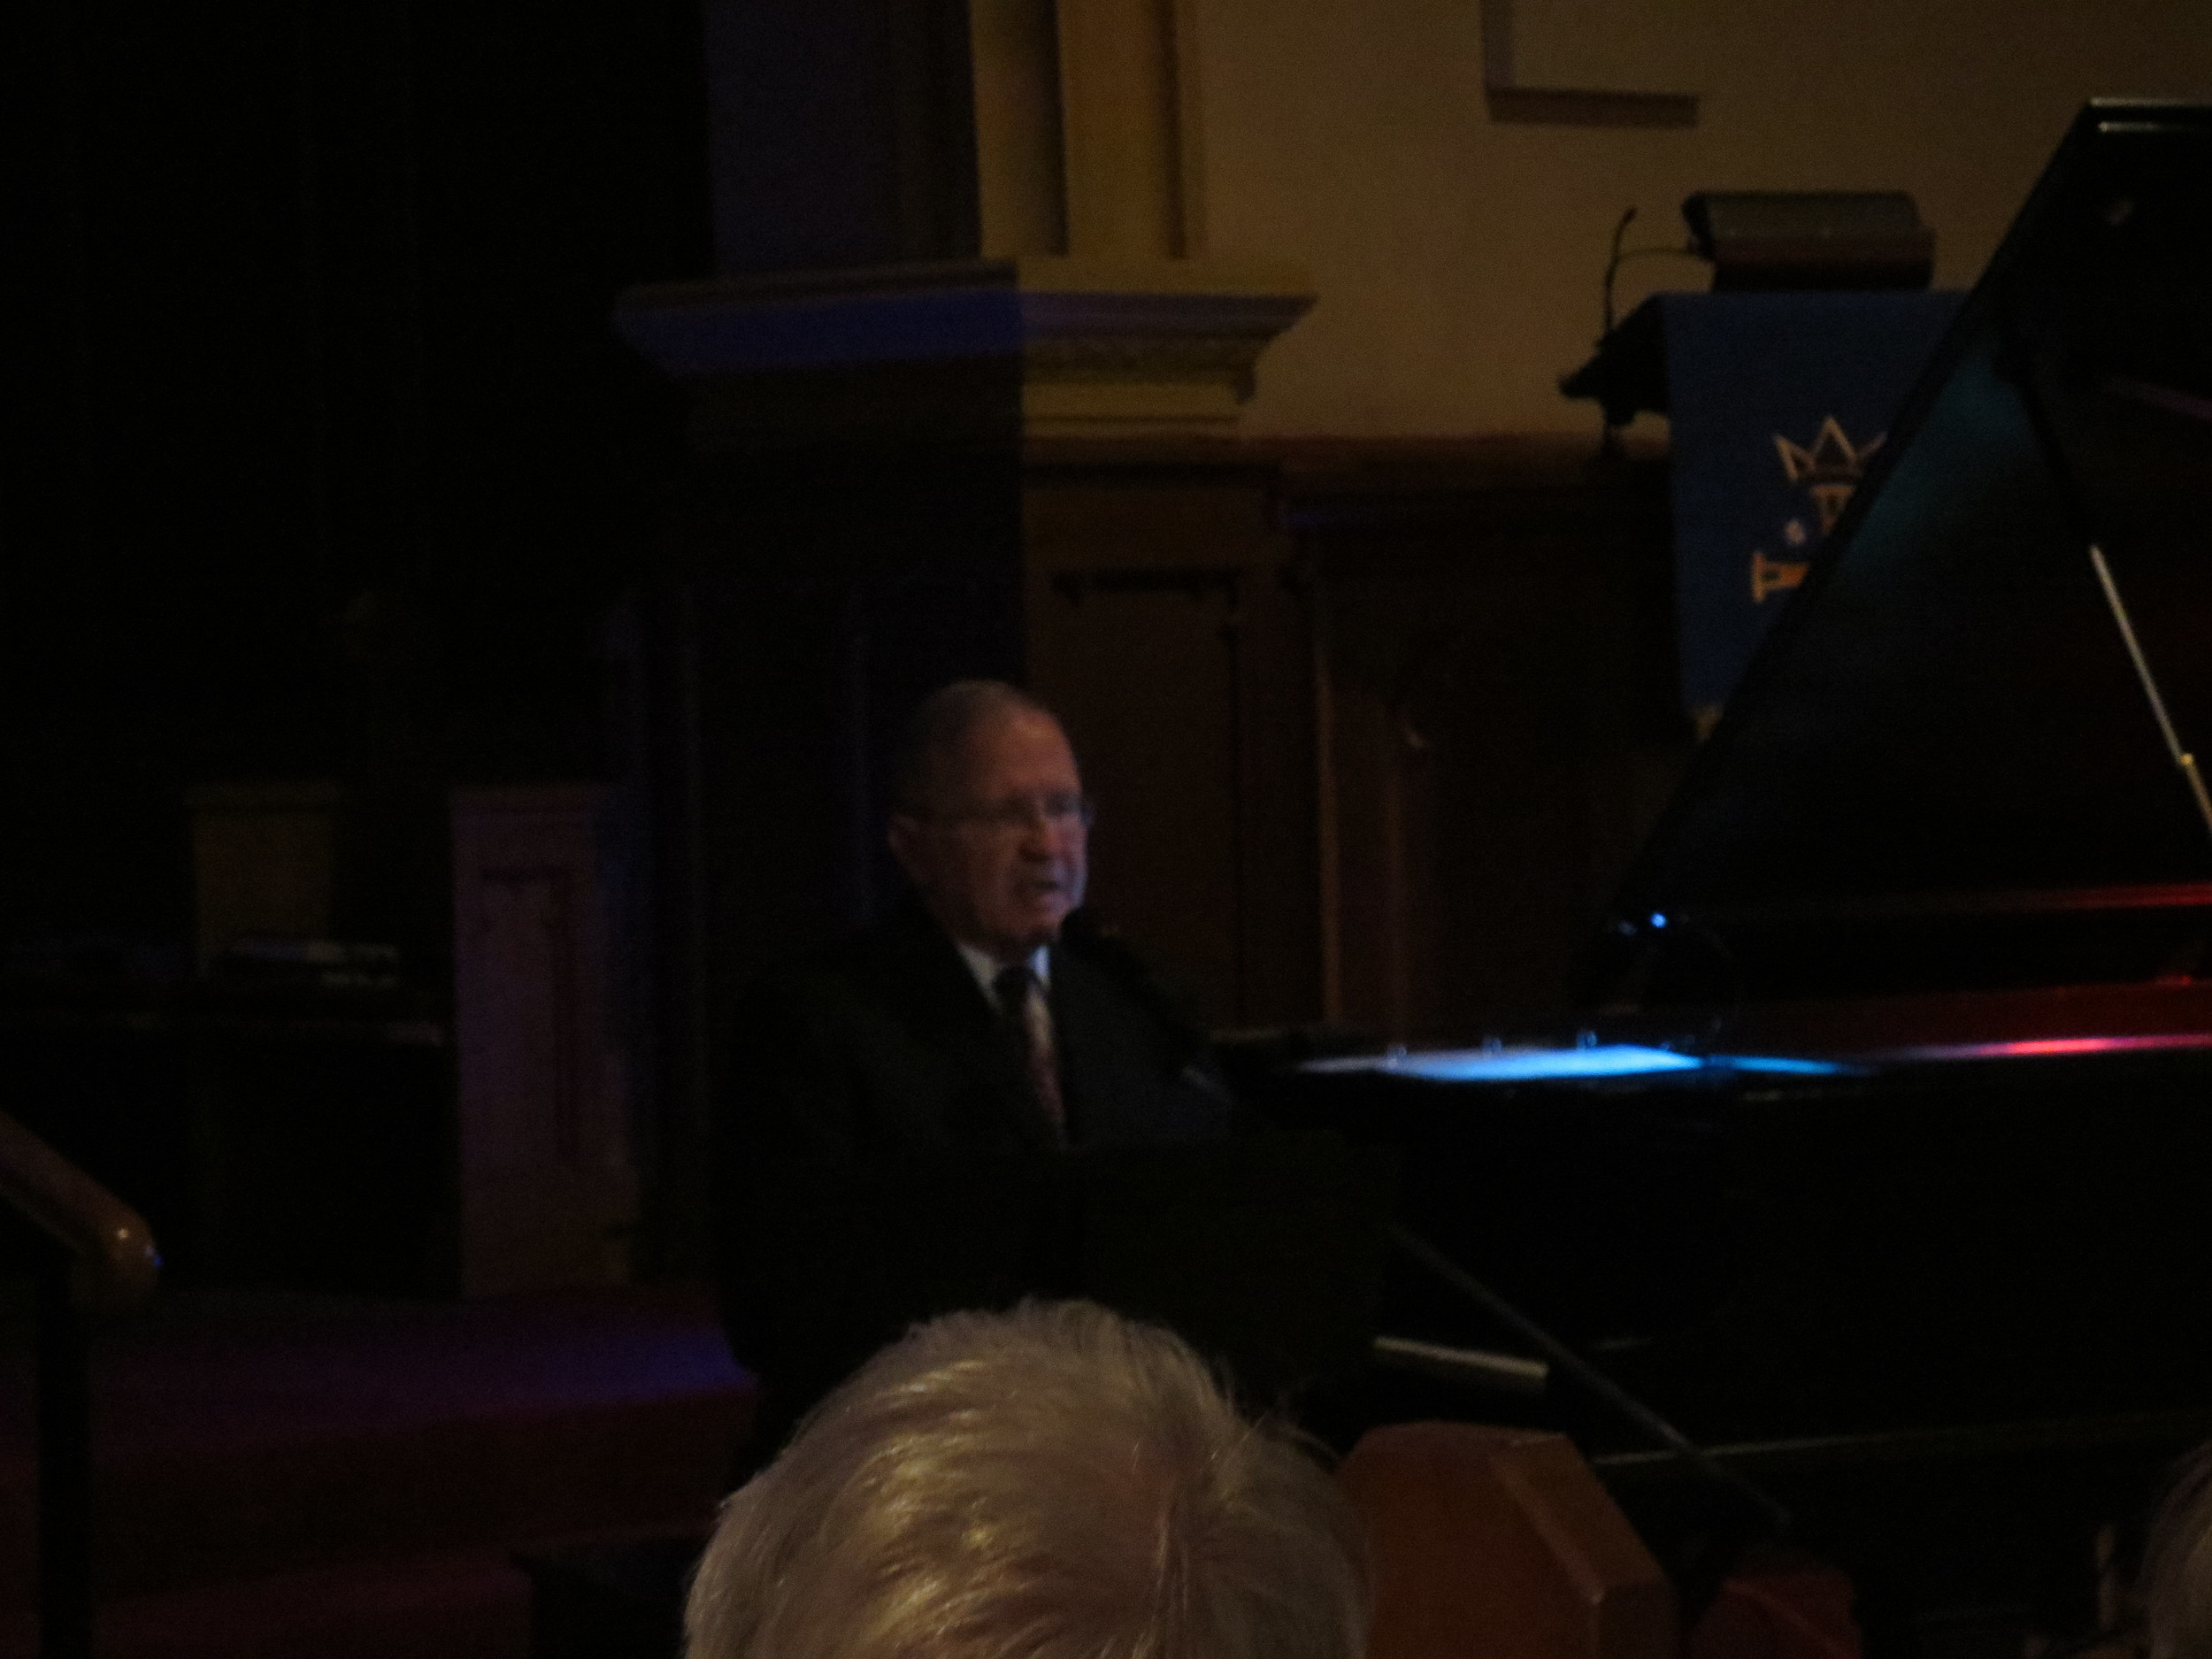 Part of our 180th Anniversary Fall Concert series,  Music and the Movies , featuring Master Raconteur, Bradley Halls on the Grand Piano, Friday December 5, 2014.